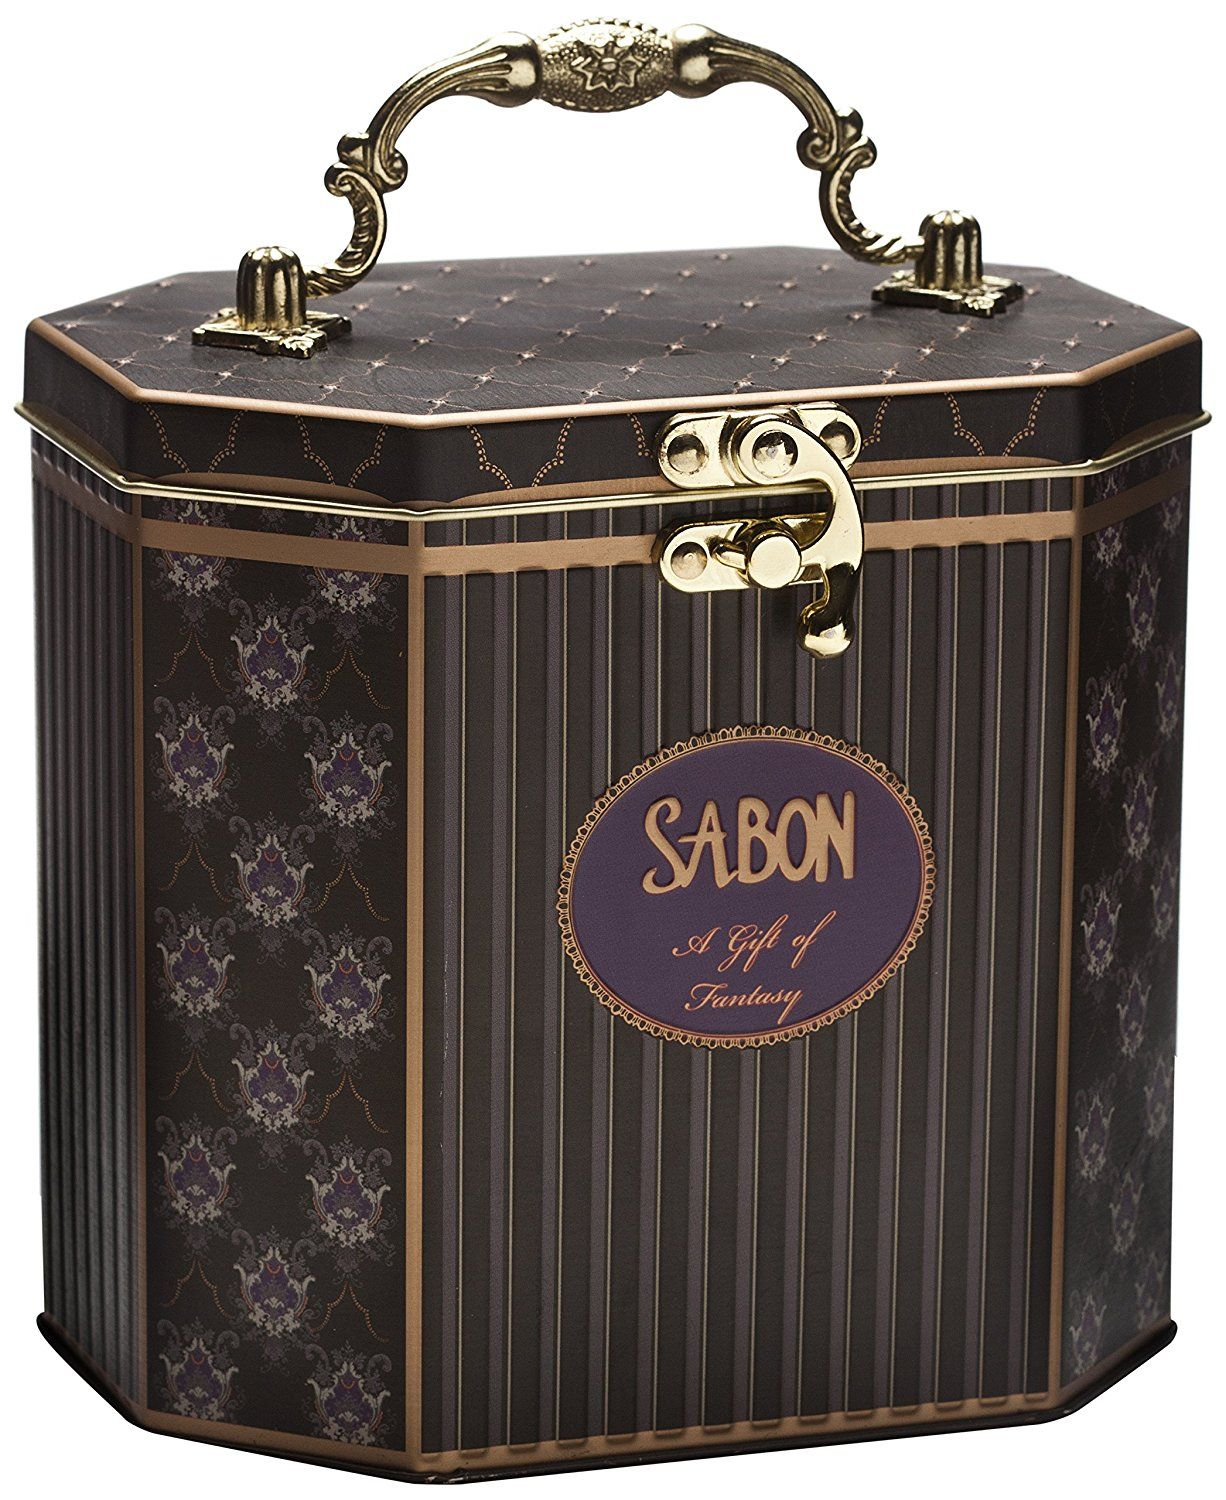 SABON Tin Box ** This is an Amazon Affiliate link. Details can be found by clicking on the image.